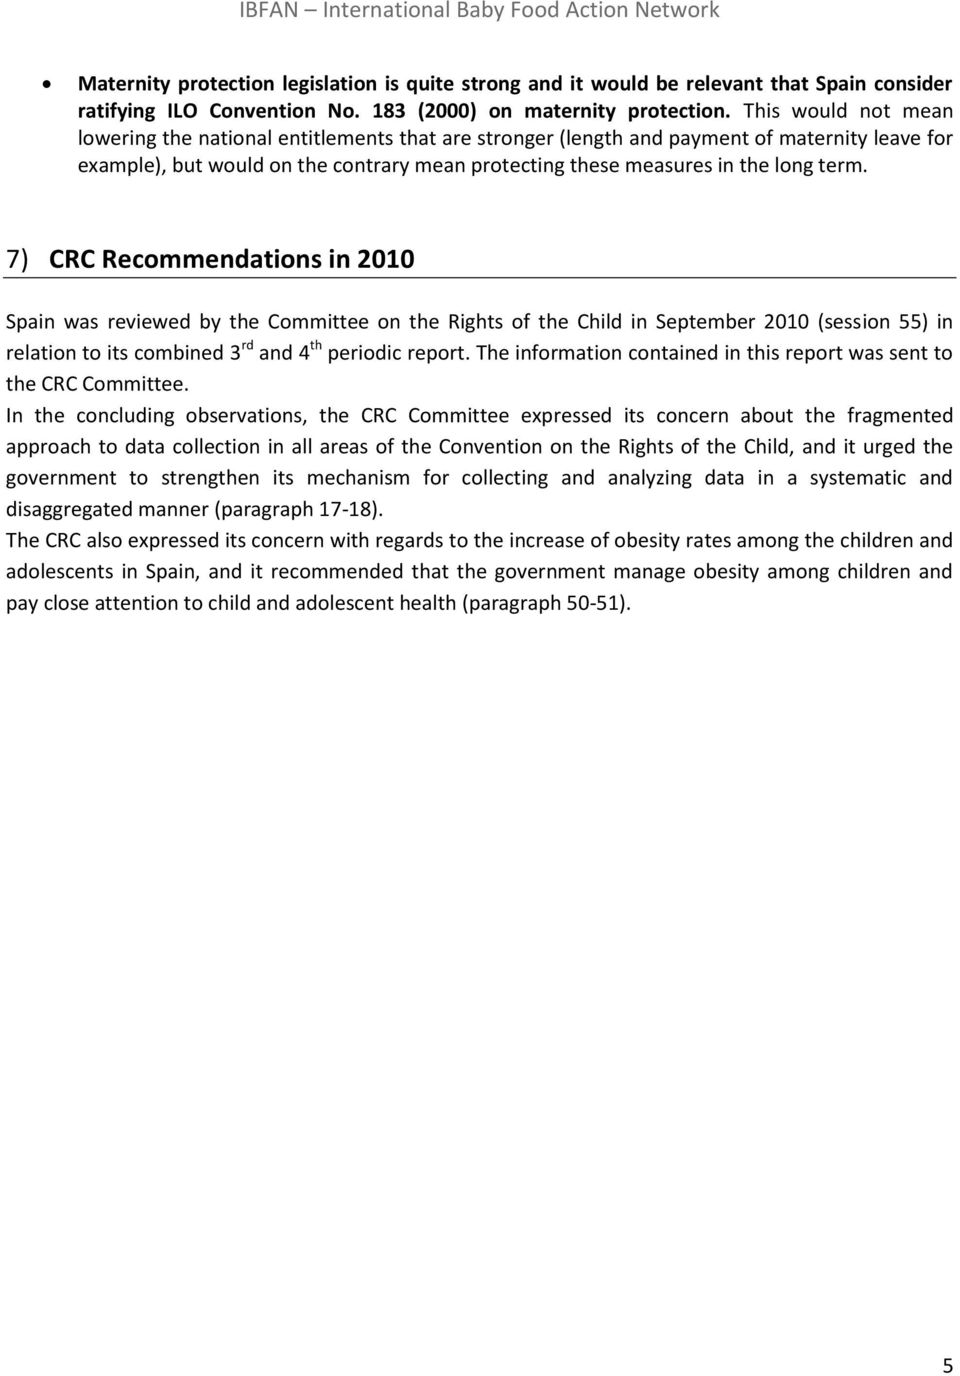 7) CRC Recommendations in 2010 Spain was reviewed by the Committee on the Rights of the Child in September 2010 (session 55) in relation to its combined 3 rd and 4 th periodic report.